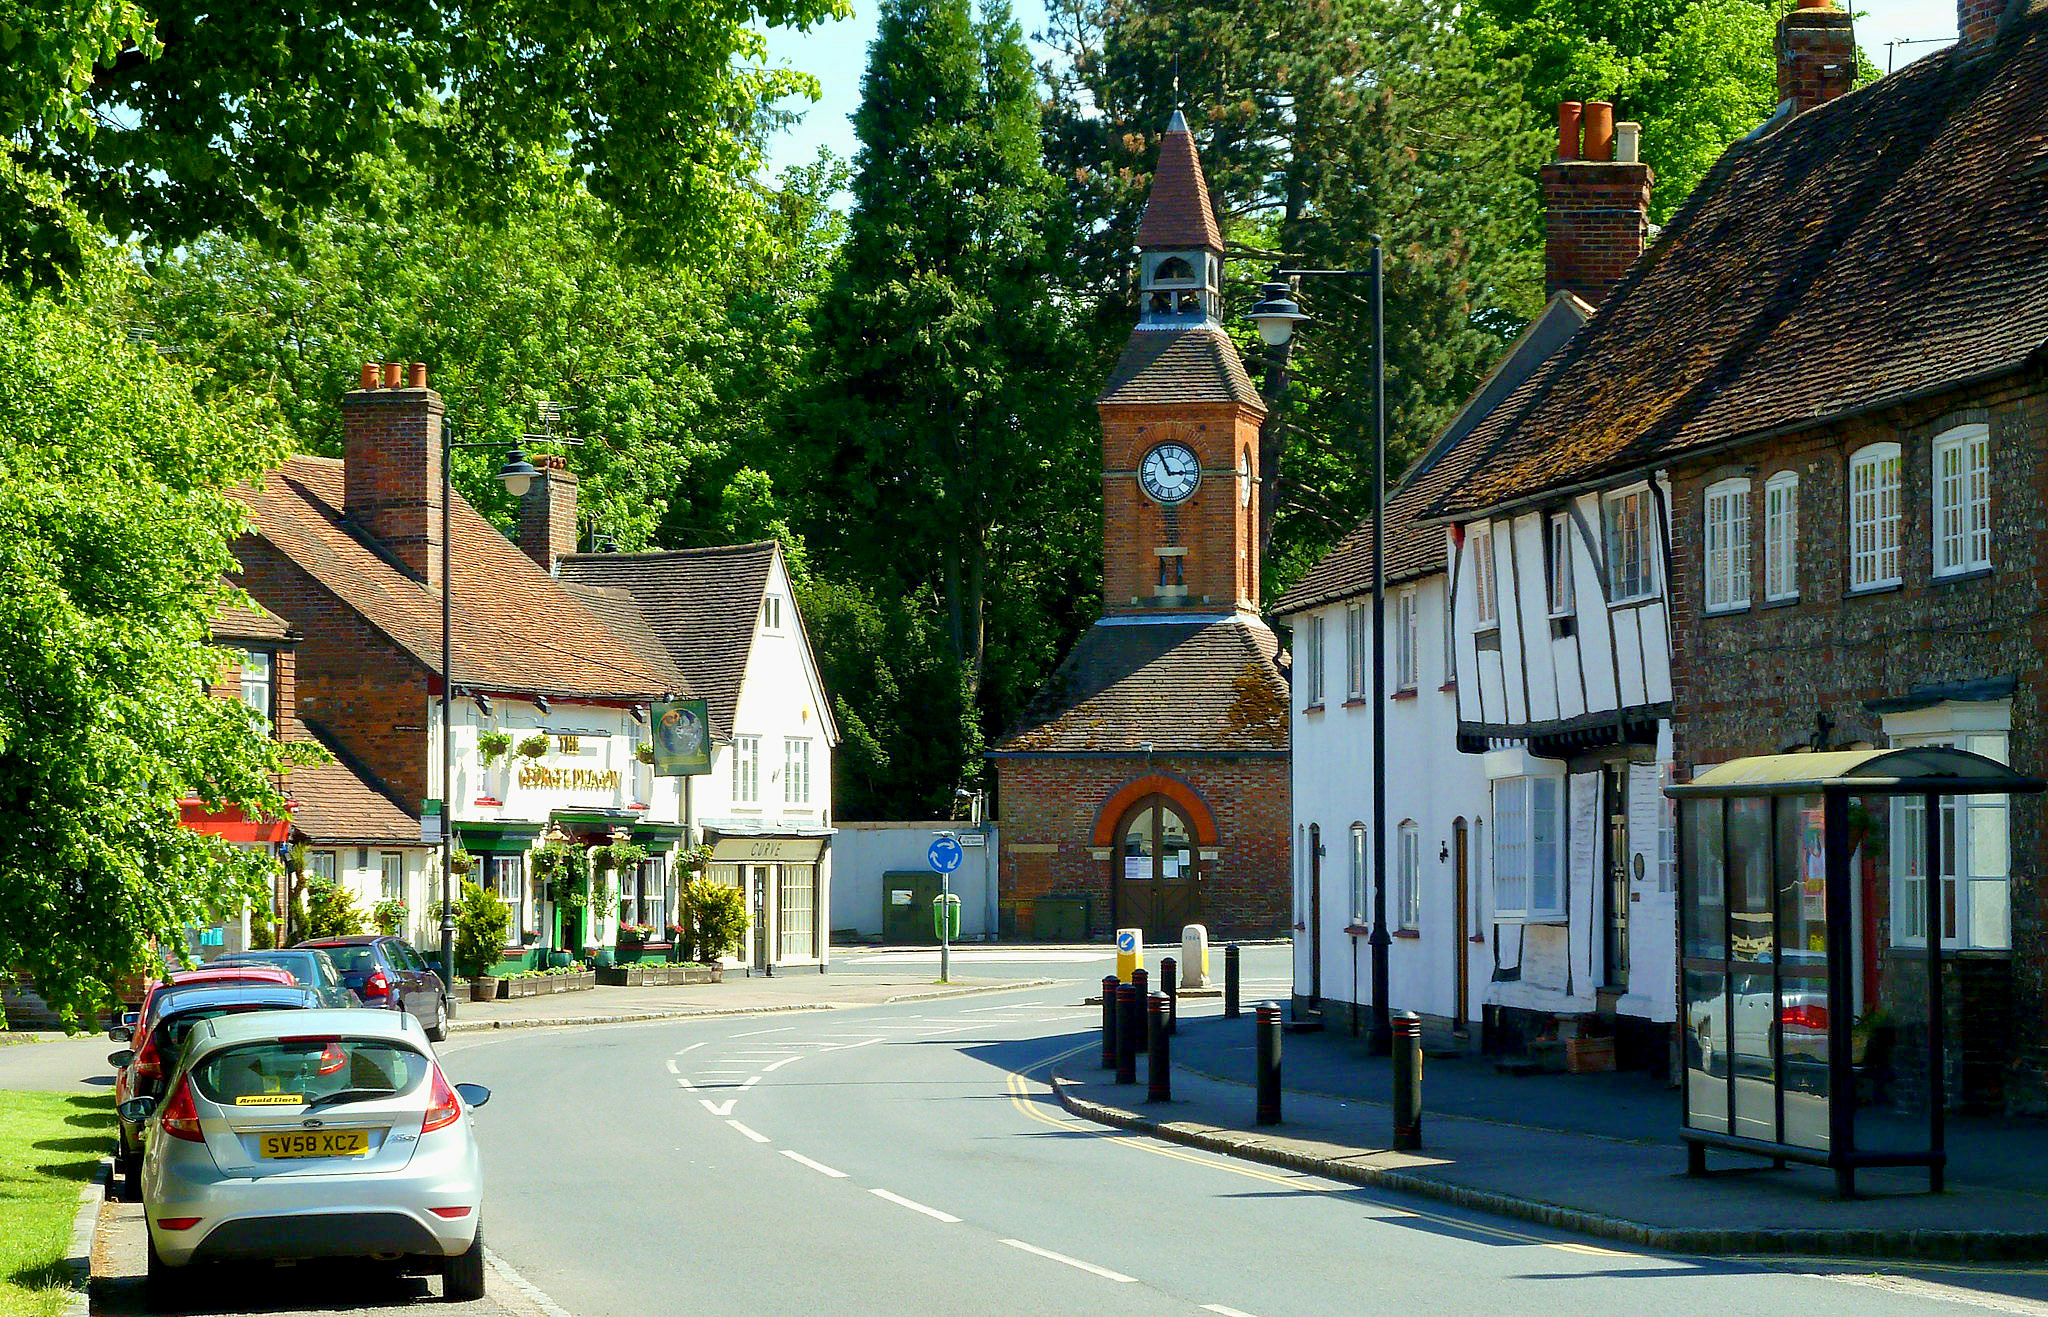 Sunday Afternoon at Wendover by Jayembee69.jpg